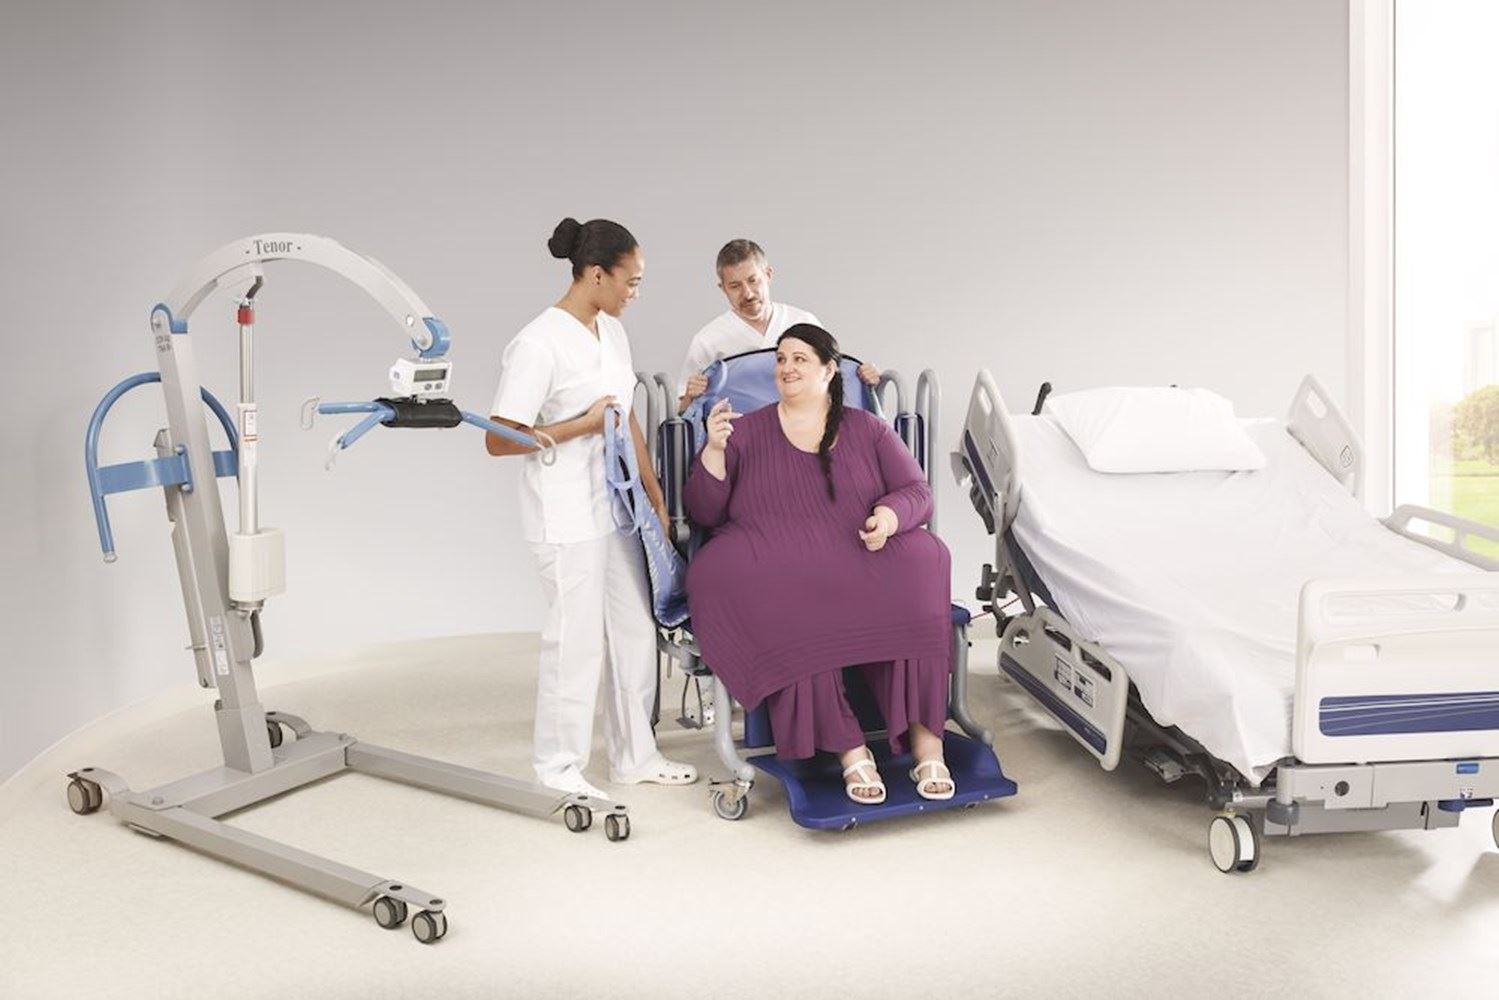 Choosing the right transfer method for plus size patients